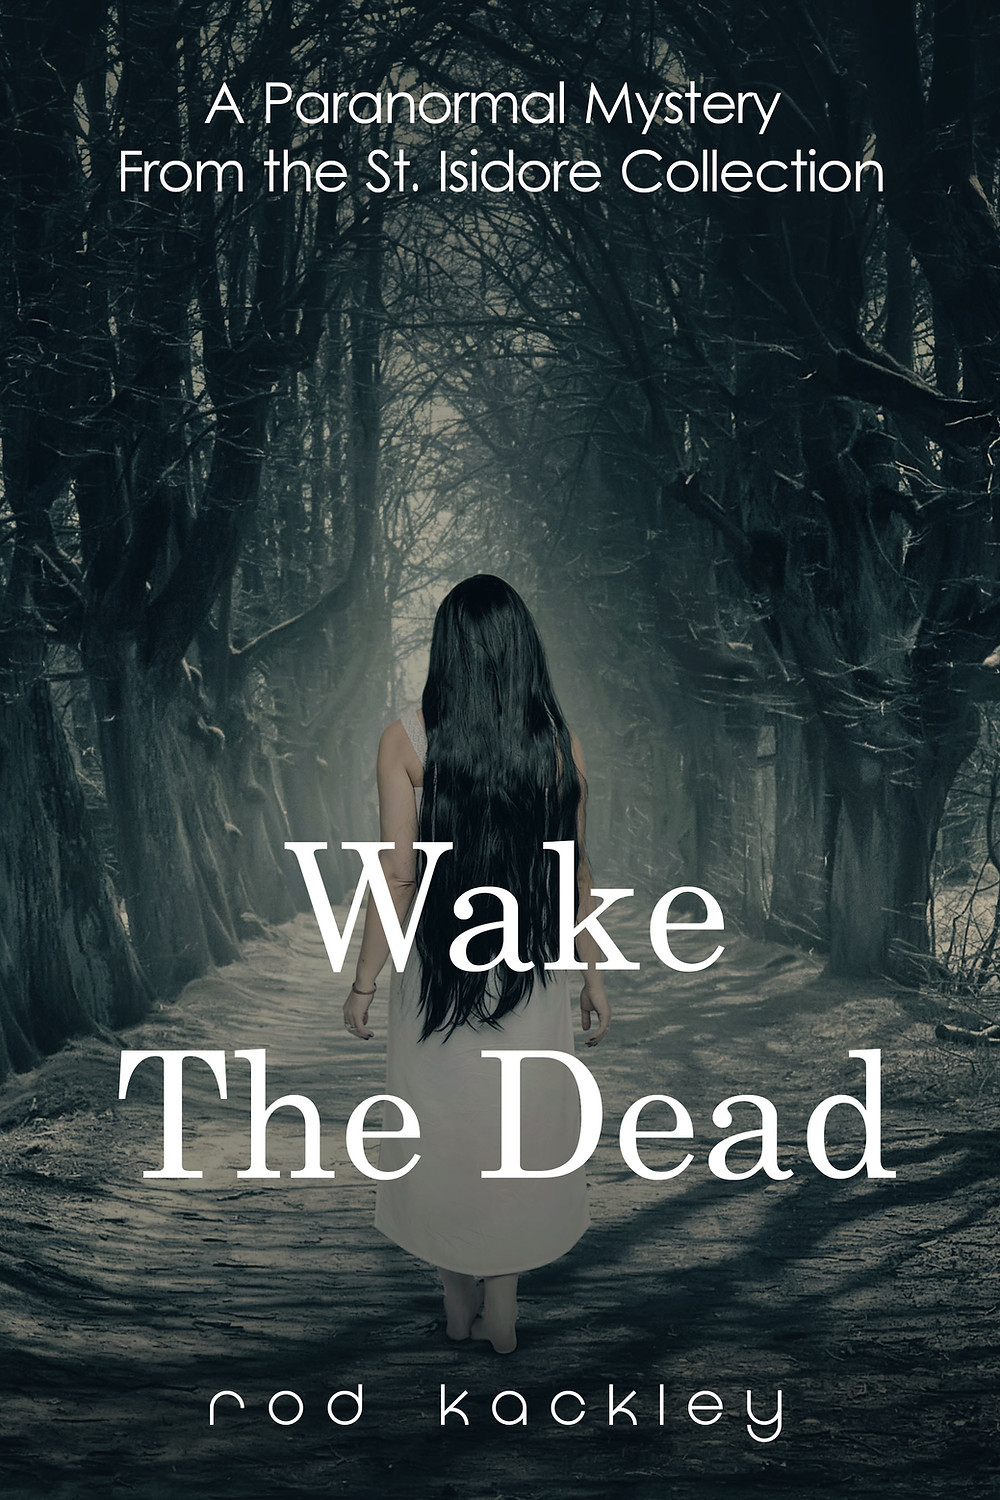 Wake The Dead: A Paranormal Mystery From the St. Isidore Collection